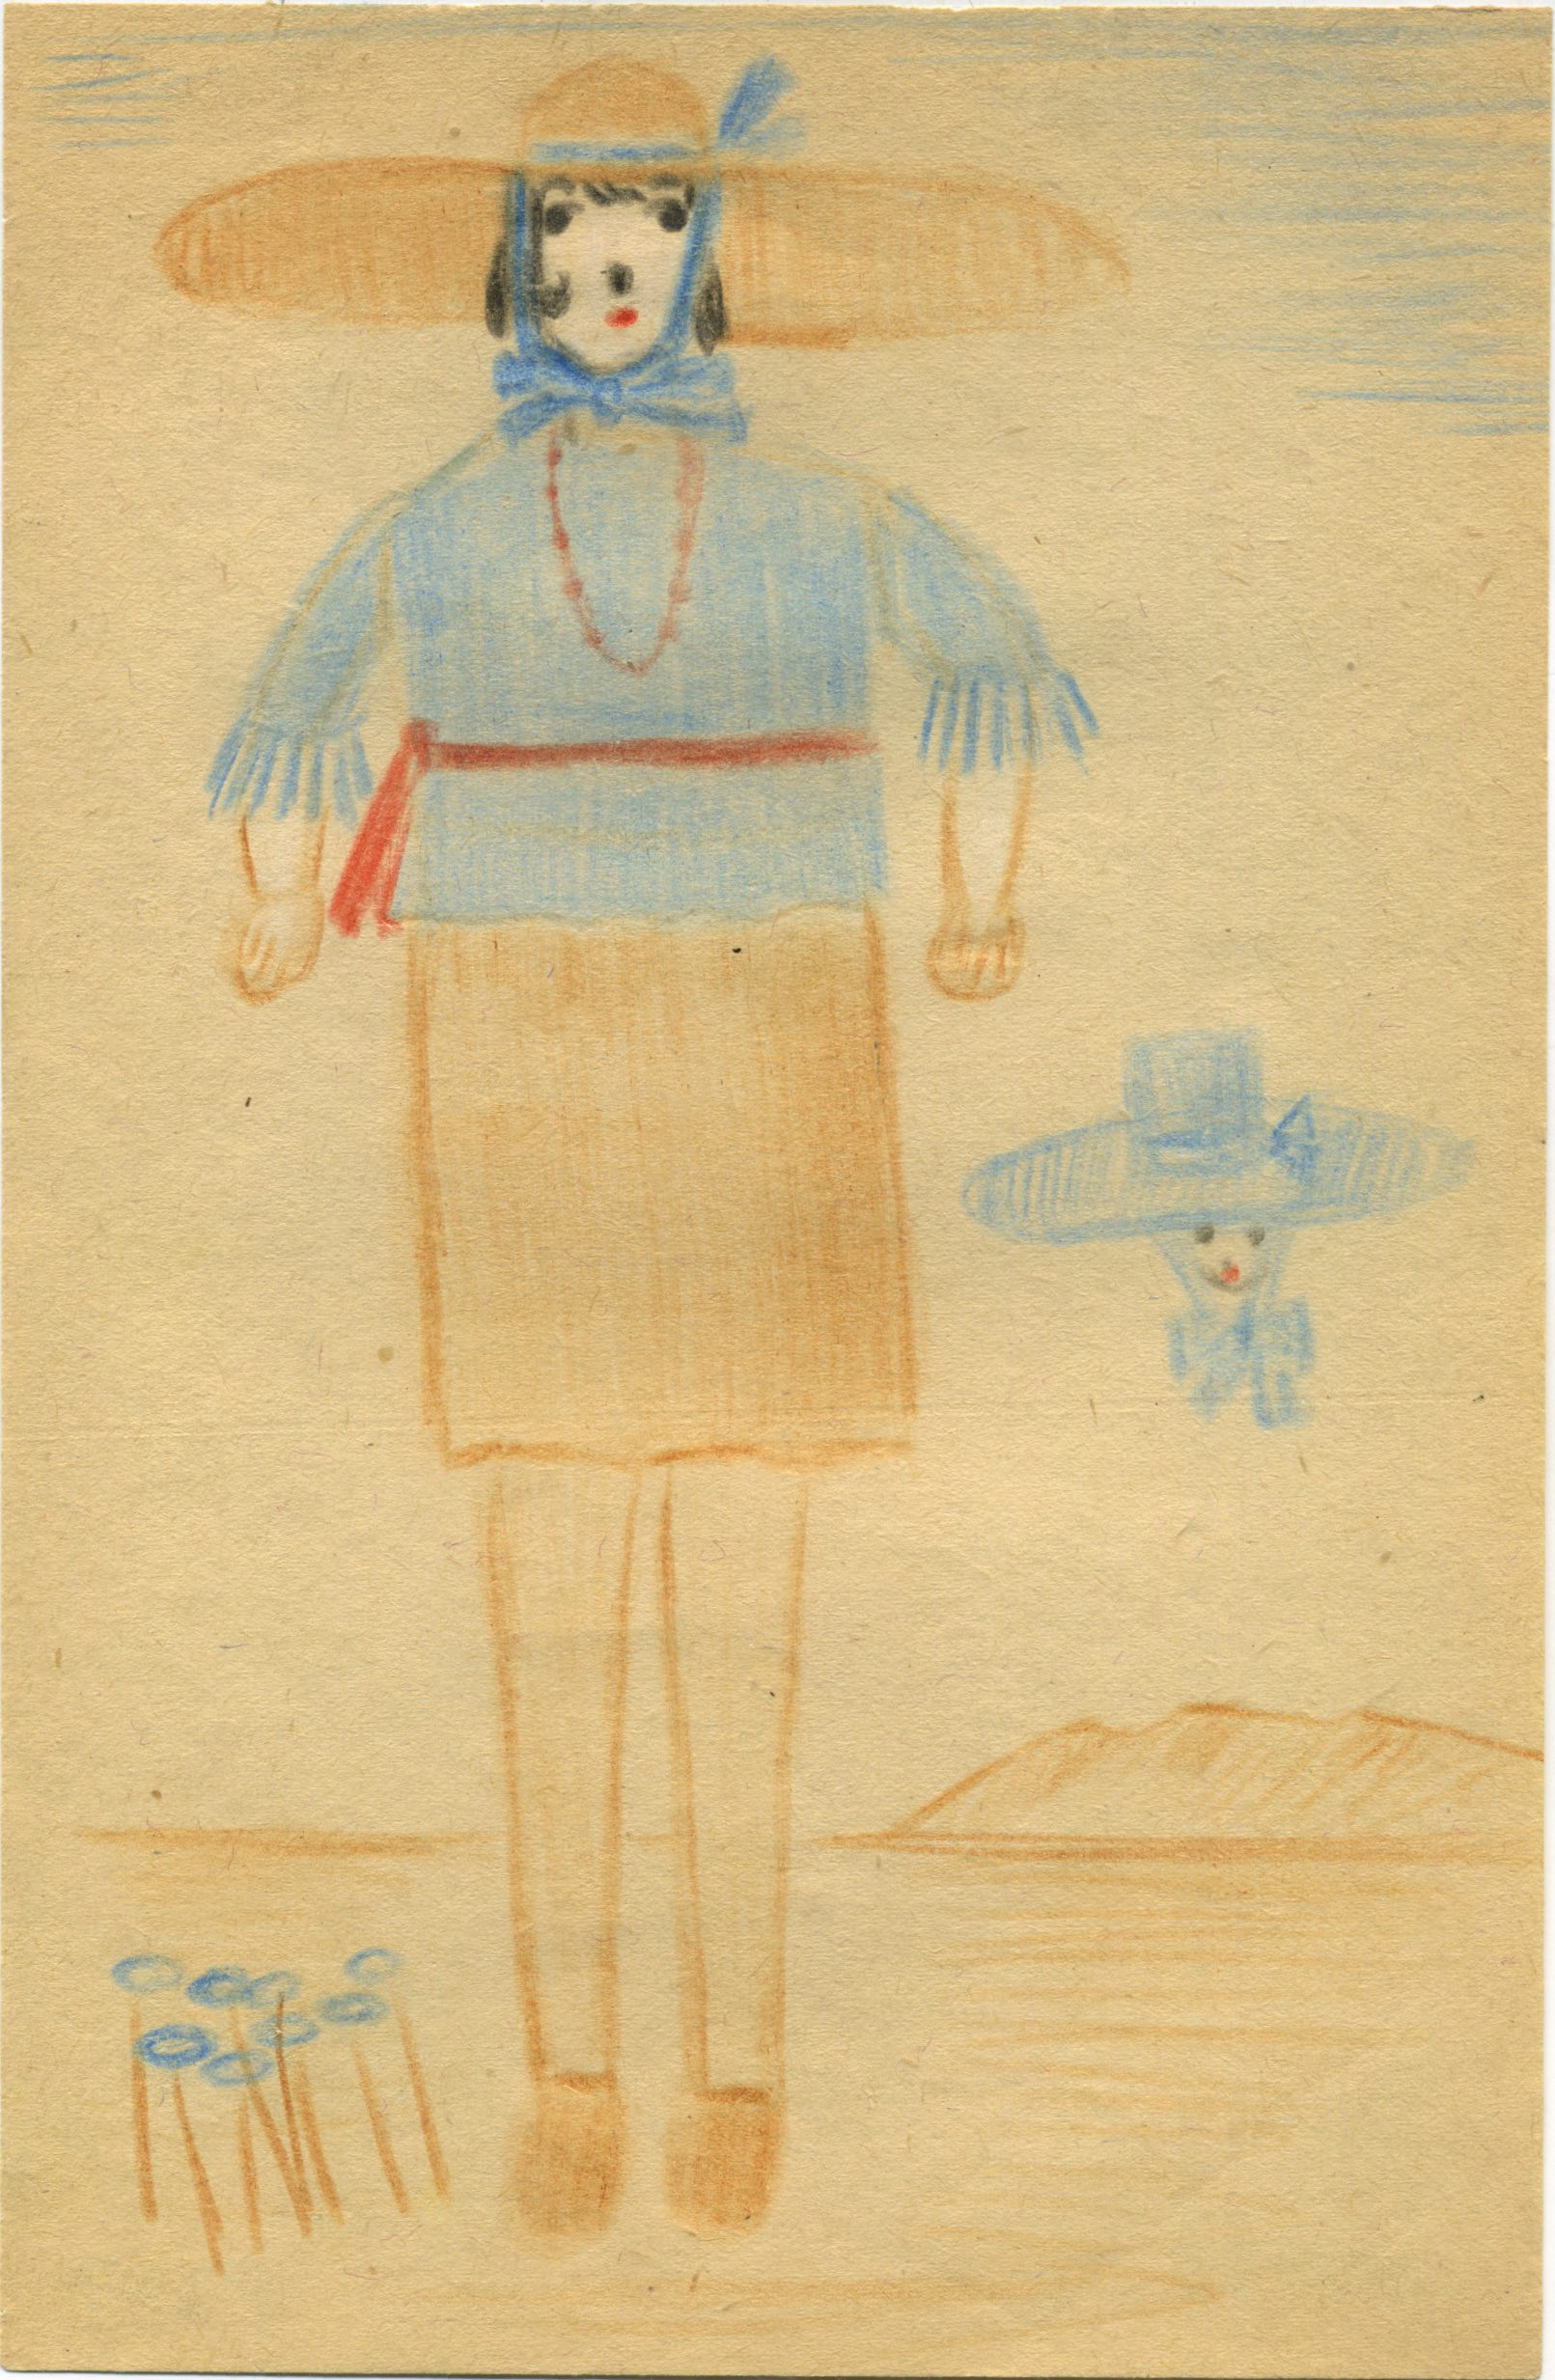 Bertha Wuilleumier    Untitled  , 1953 Color pencil on paper 8.2 x 5.3 inches 20.8 x 13.5 cm BWu 12